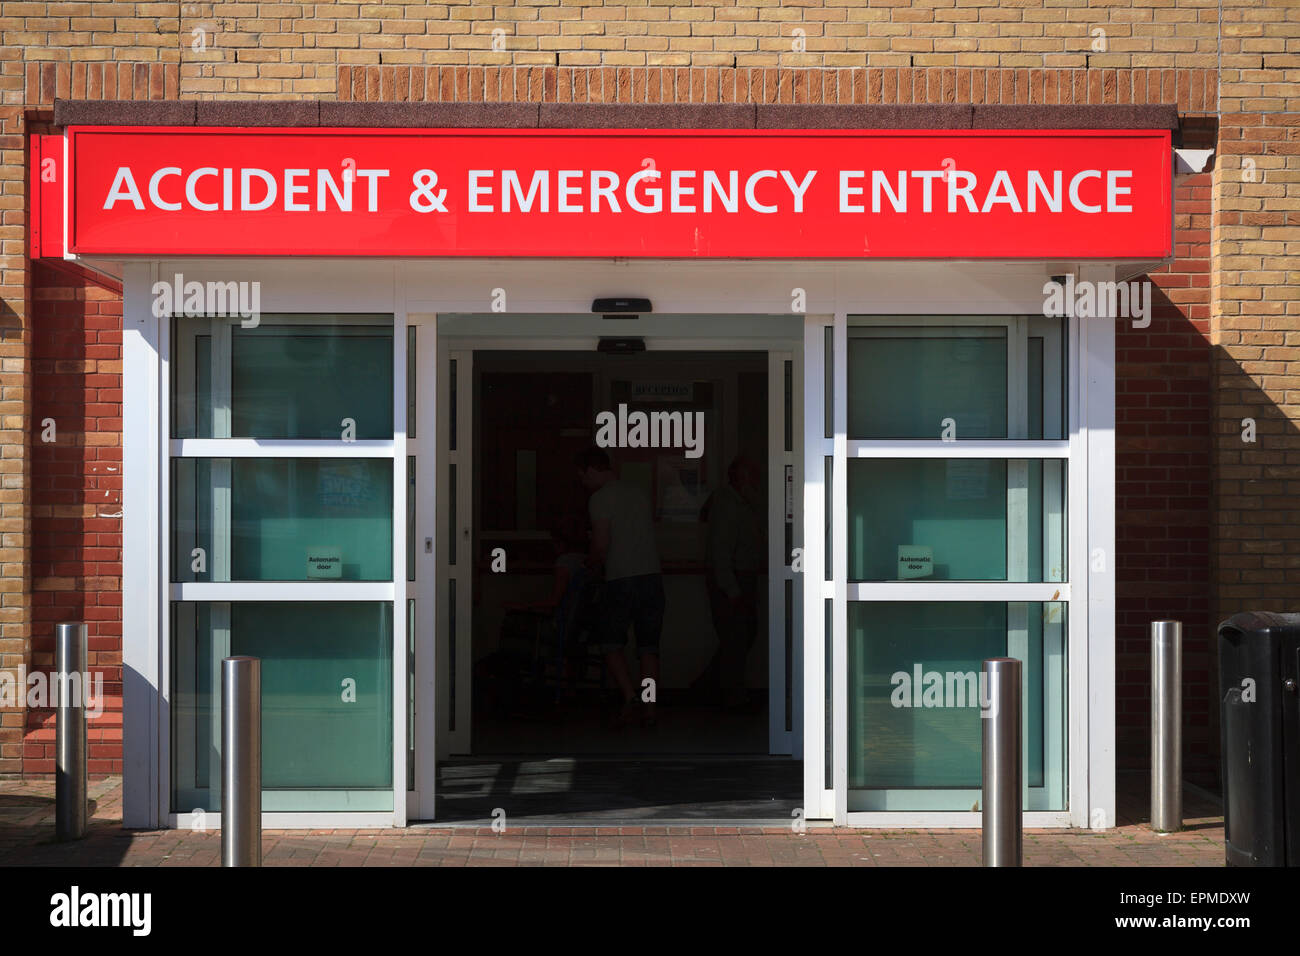 Hospital accident and emergency entrance and sign - Stock Image